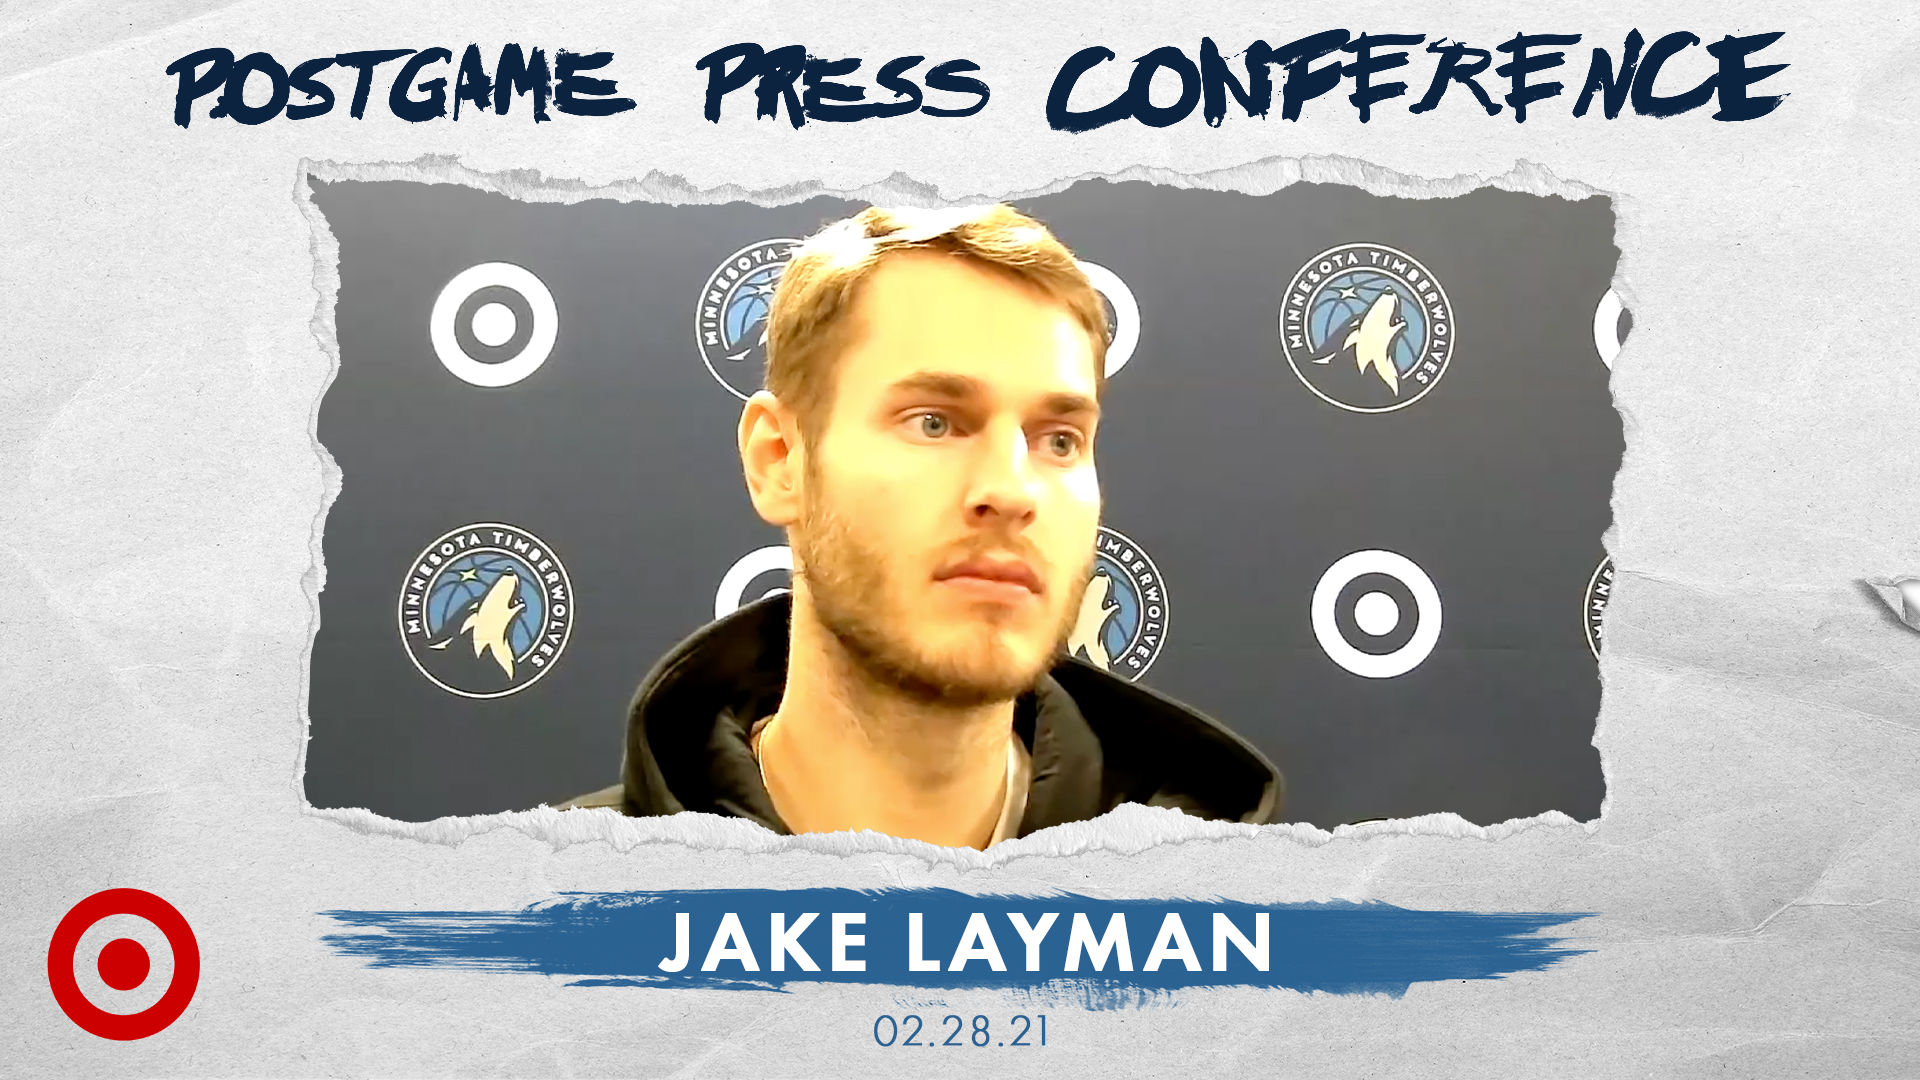 Jake Layman Postgame Press Conference - February 28, 2021